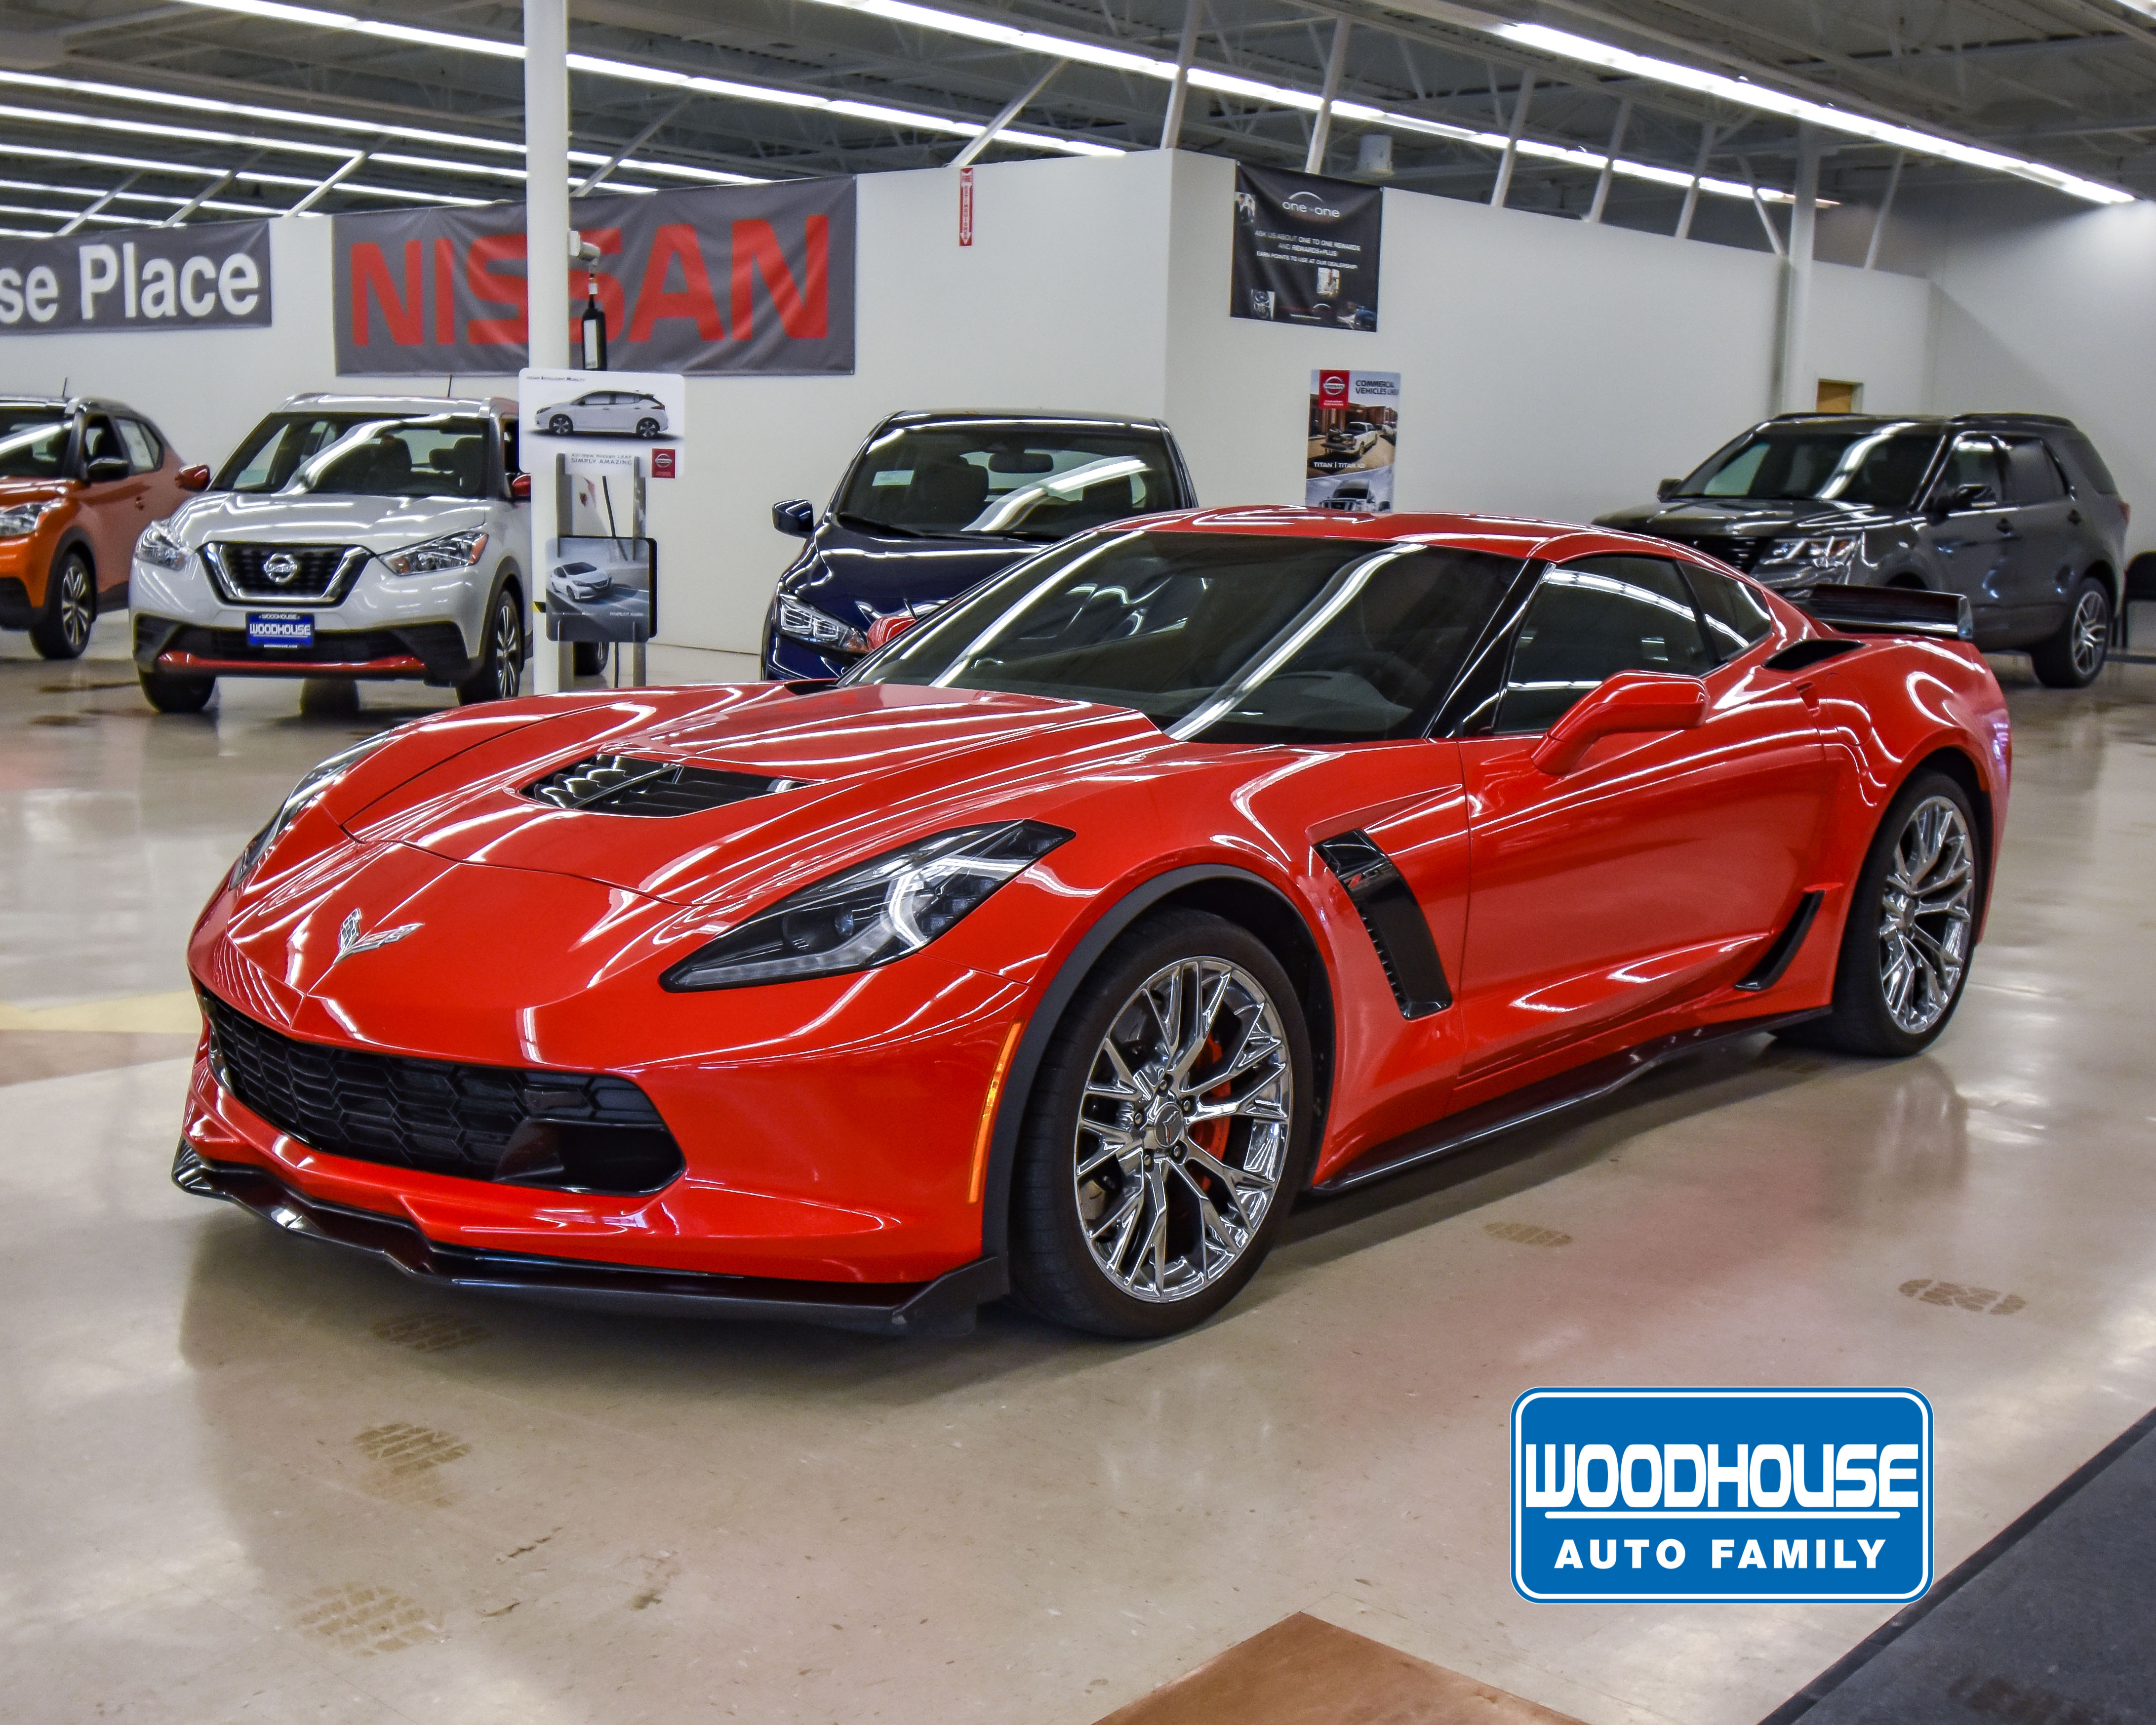 Z06 Corvette For Sale >> Woodhouse Used 2017 Chevrolet Corvette For Sale Nissan Woodhouse